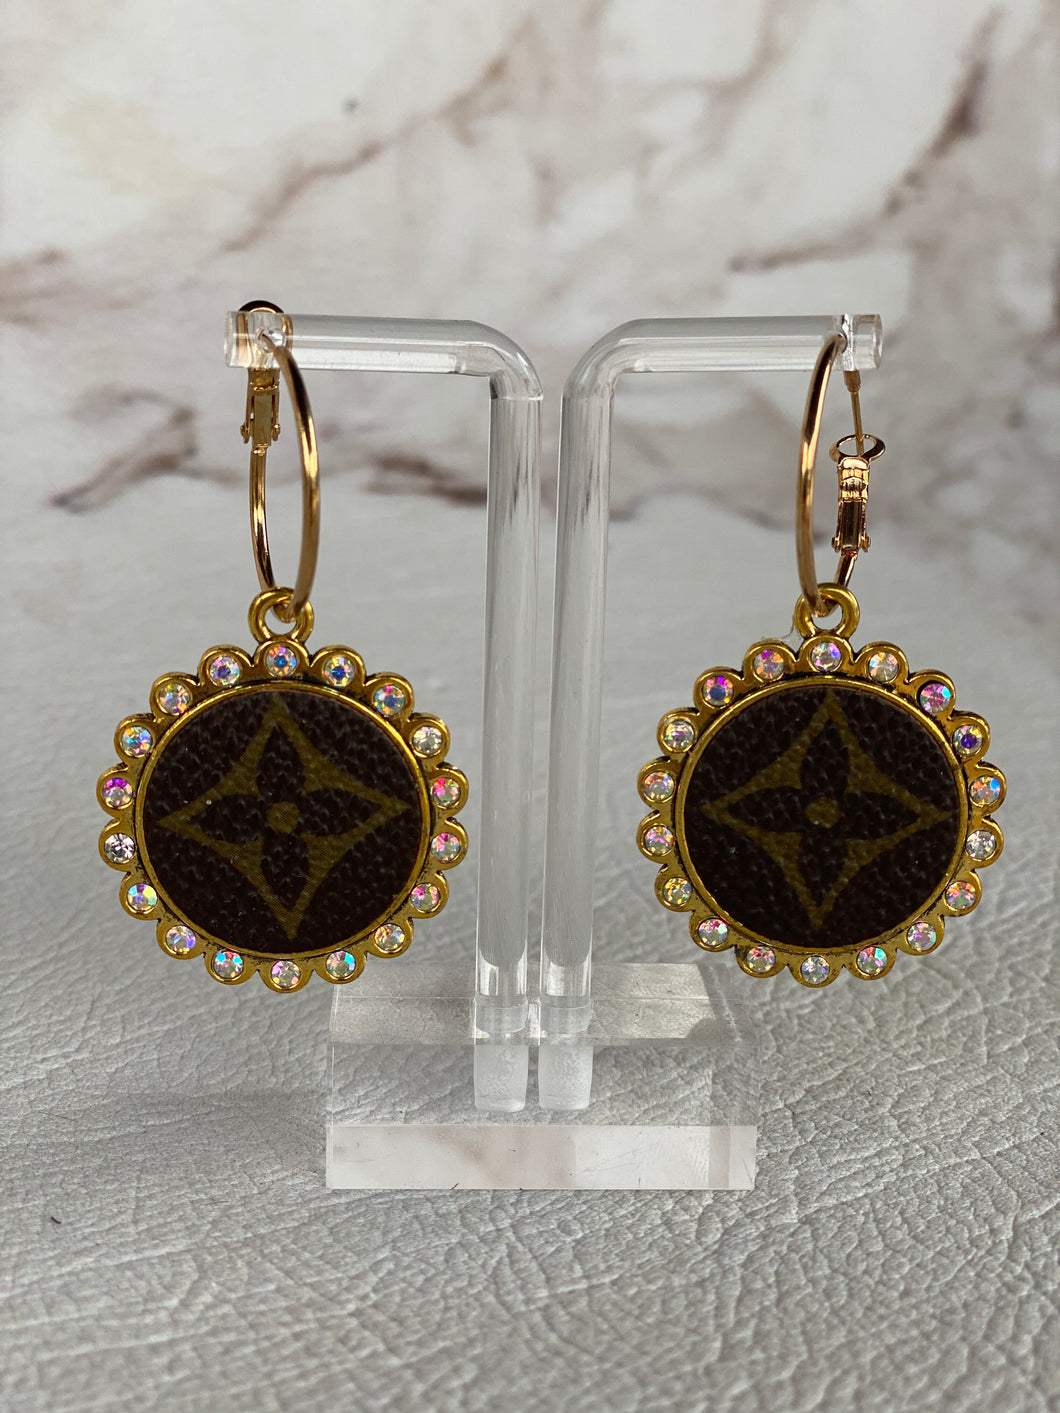 Gold Repurposed LV Earrings